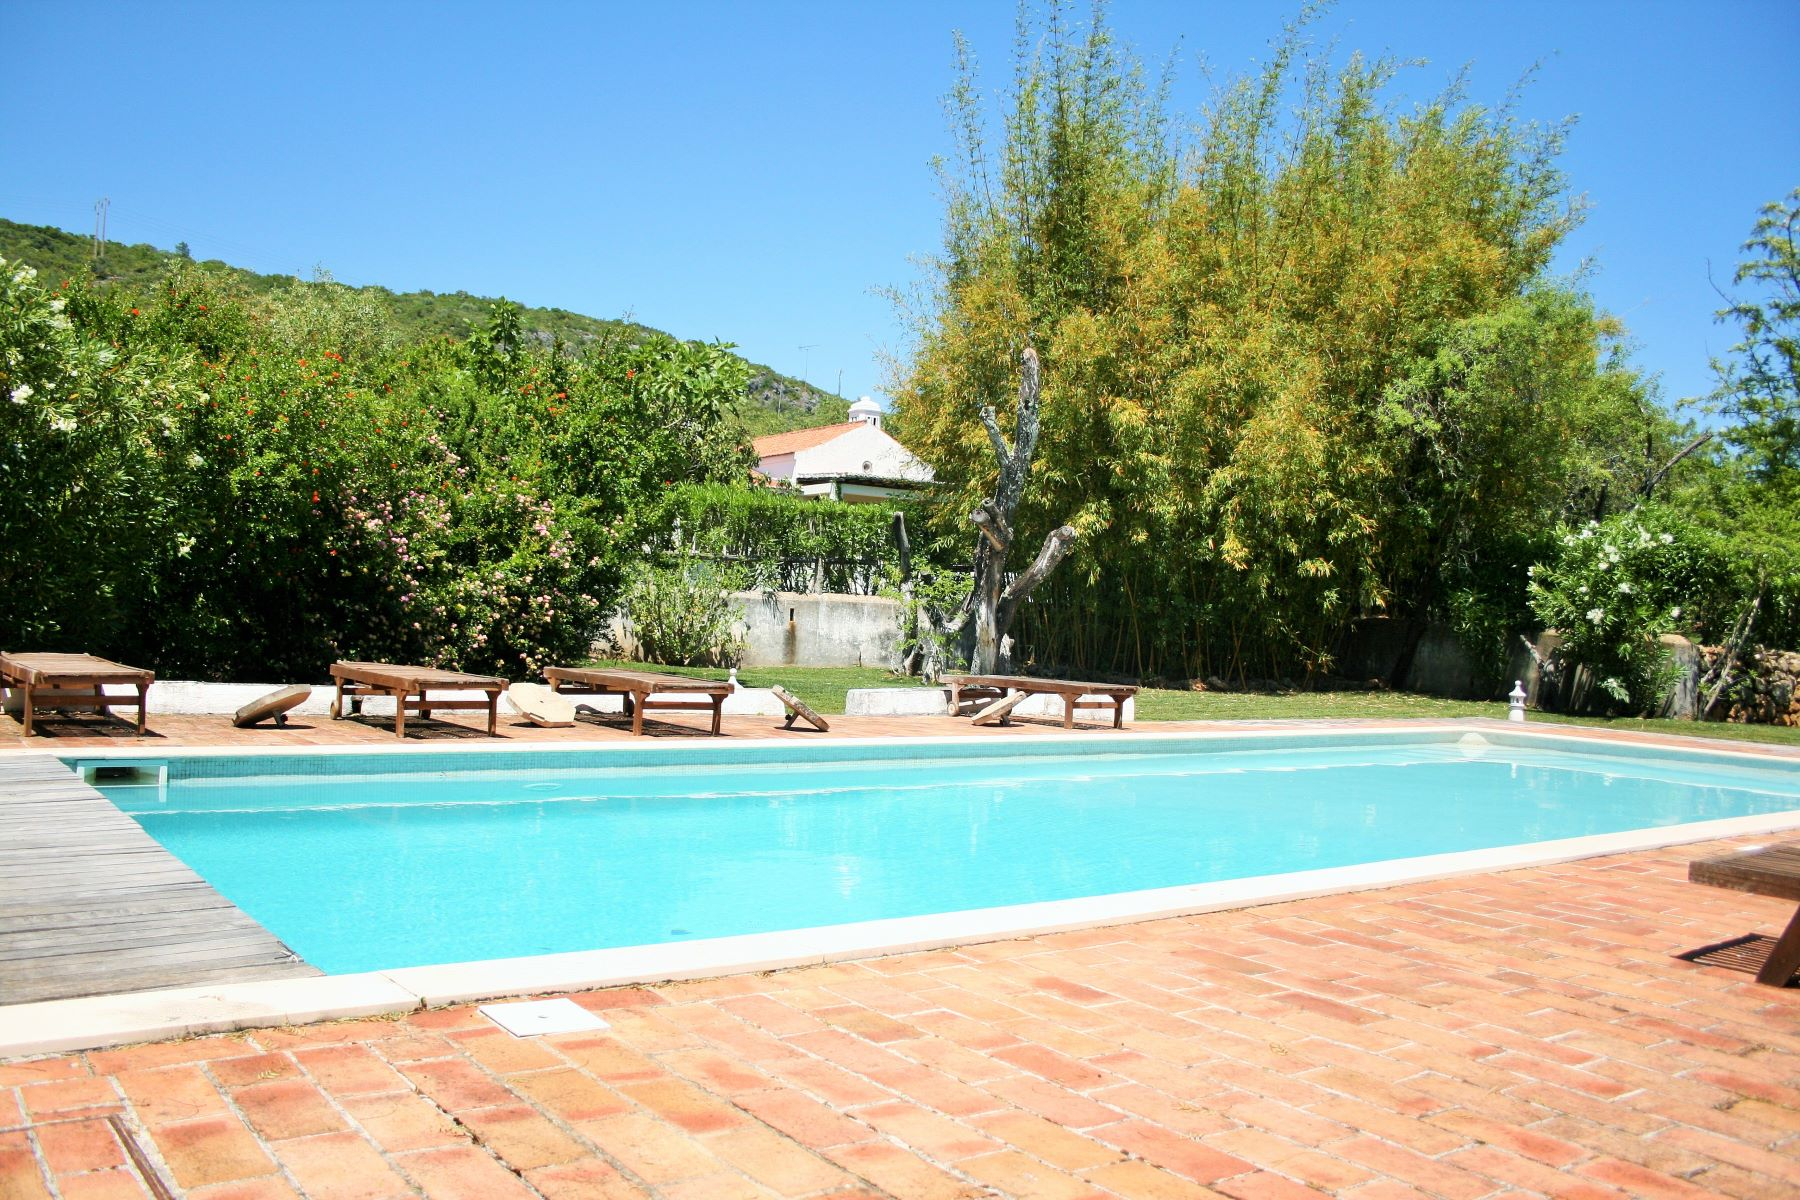 Single Family Home for Sale at Detached house, 6 bedrooms, for Sale Sao Bras De Alportel, Algarve, Portugal